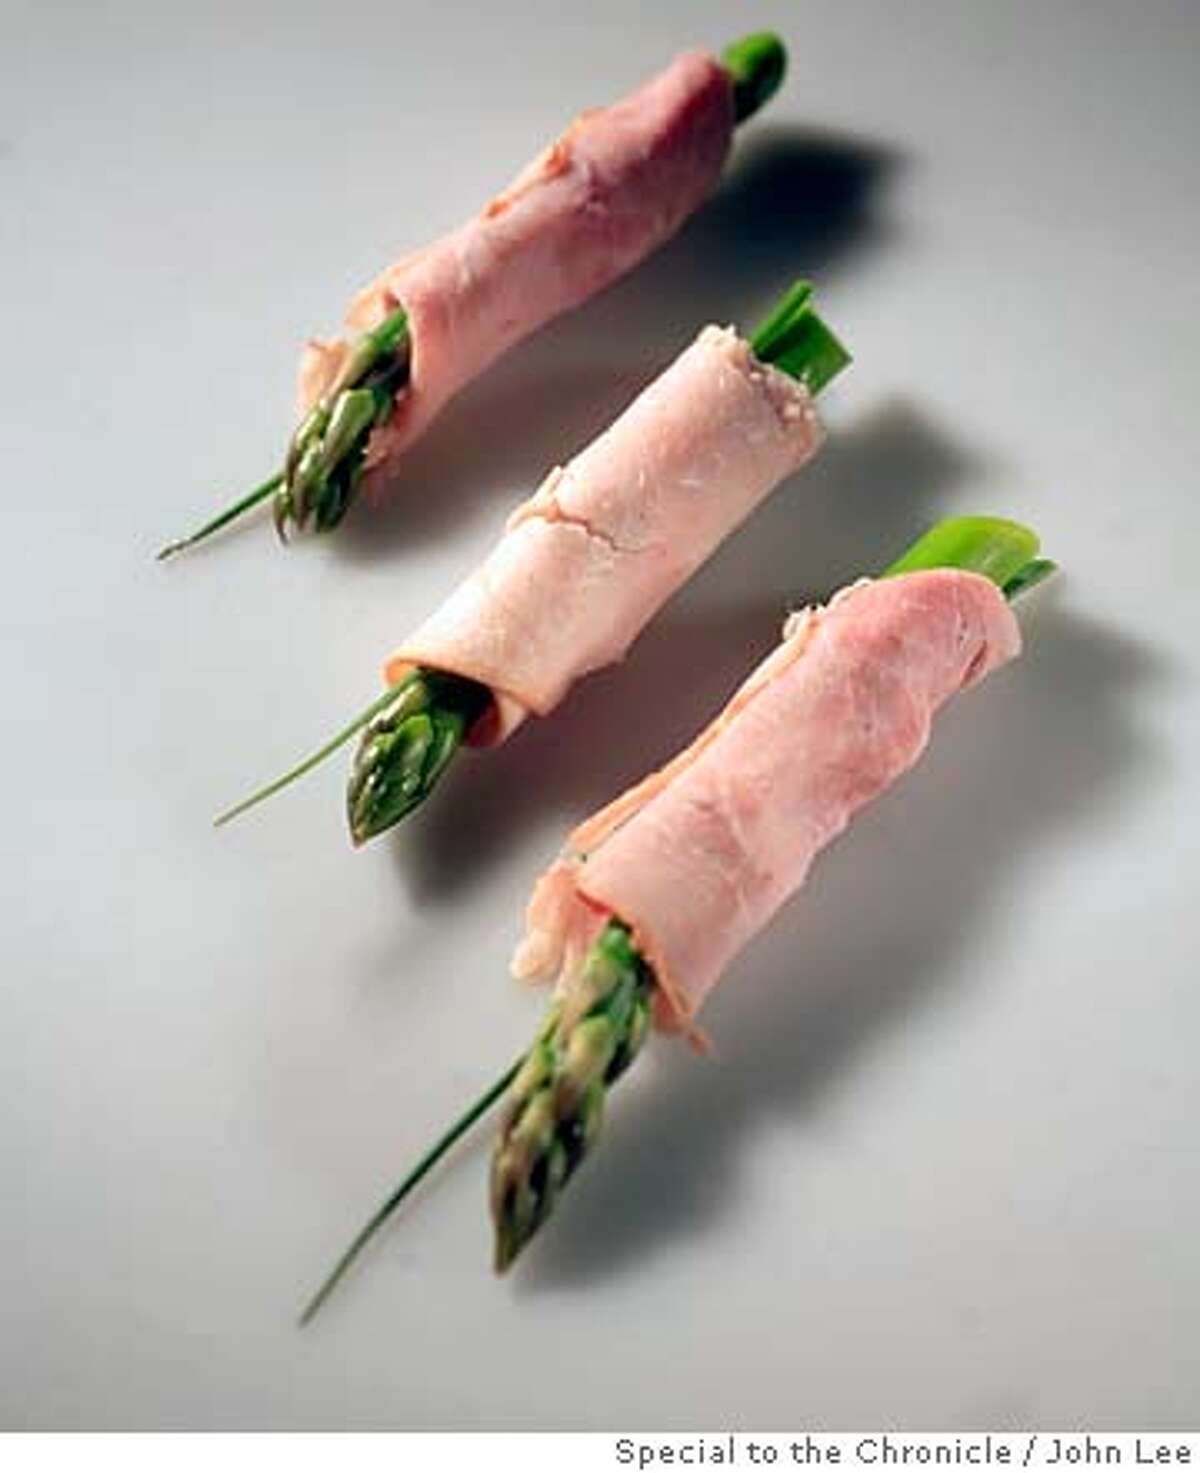 ###Live Caption:SN29_SNAK_02_JOHNLEE.JPG Asparagus spear wrapped in ham. By JOHN LEE/SPECIAL TO THE CHRONICLE###Caption History:SN29_SNAK_02_JOHNLEE.JPG Asparagus spear wrapped in ham. By JOHN LEE/SPECIAL TO THE CHRONICLE###Notes:###Special Instructions: